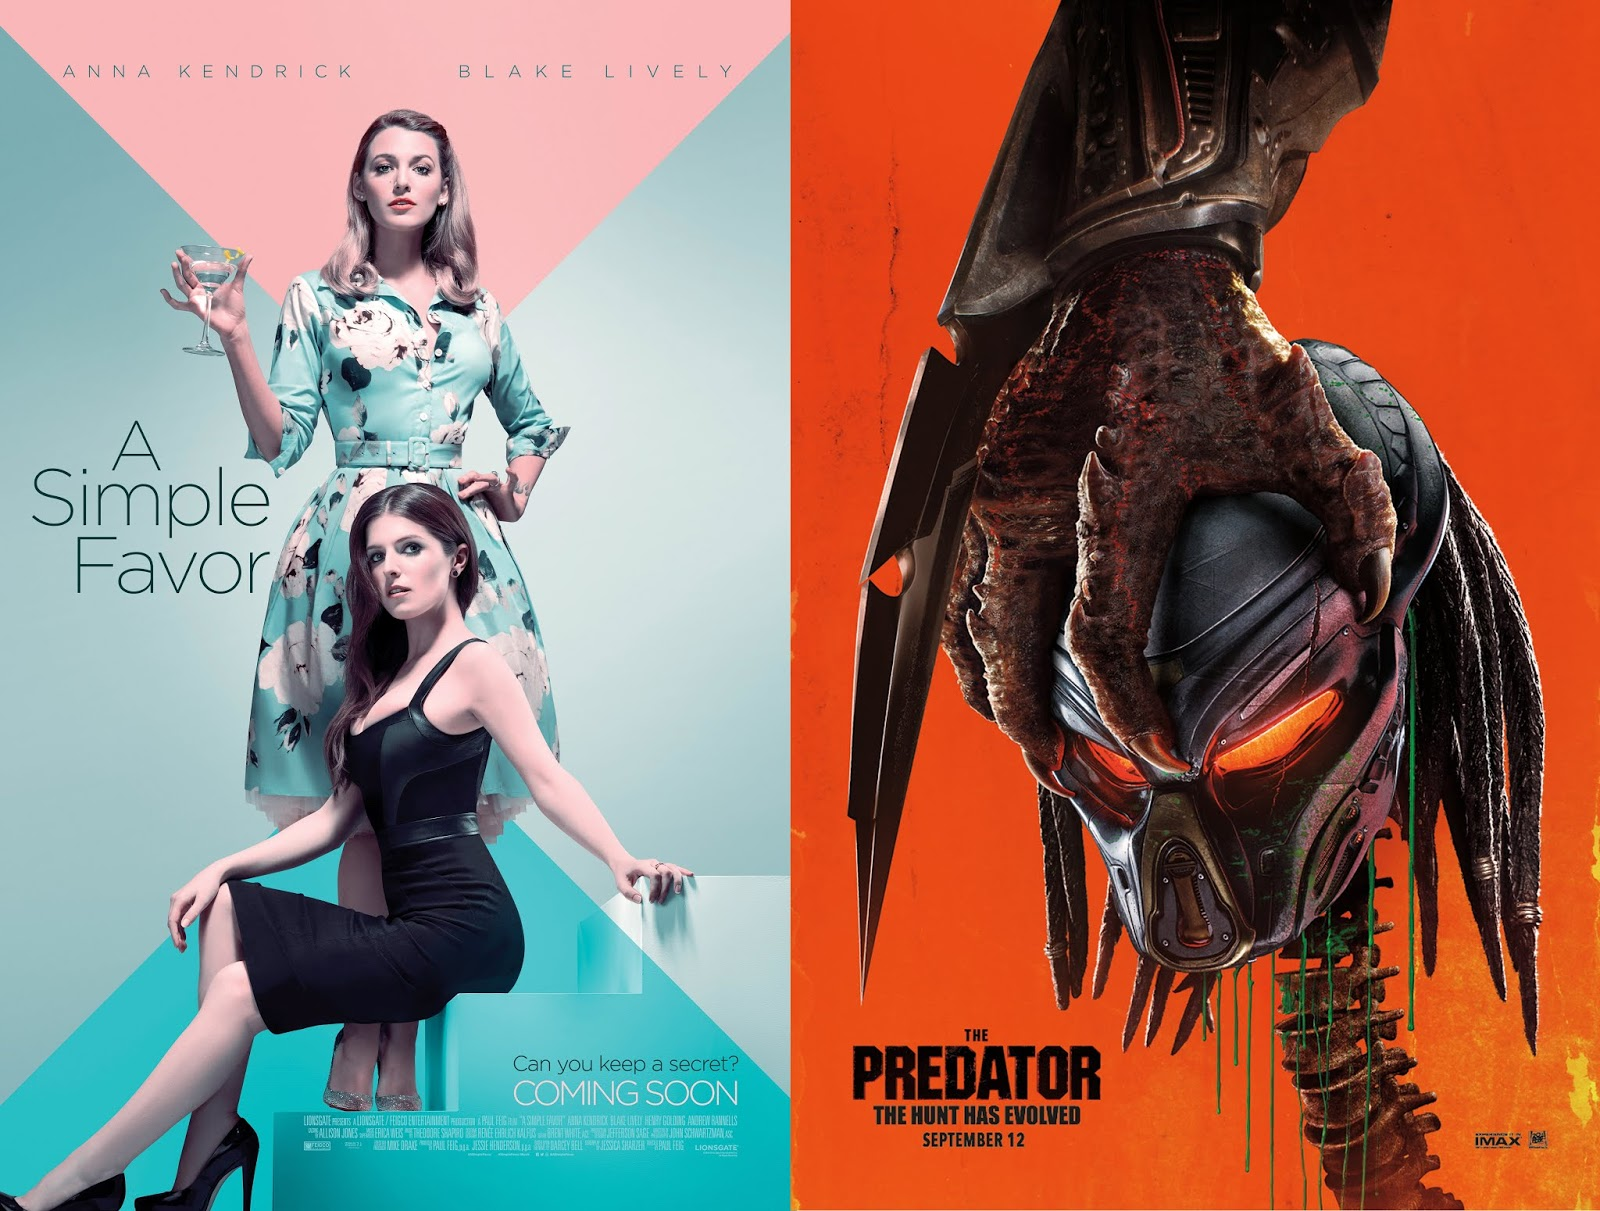 Feel The Thrill Of The Predator And A Simple Favor In Sm Cinema